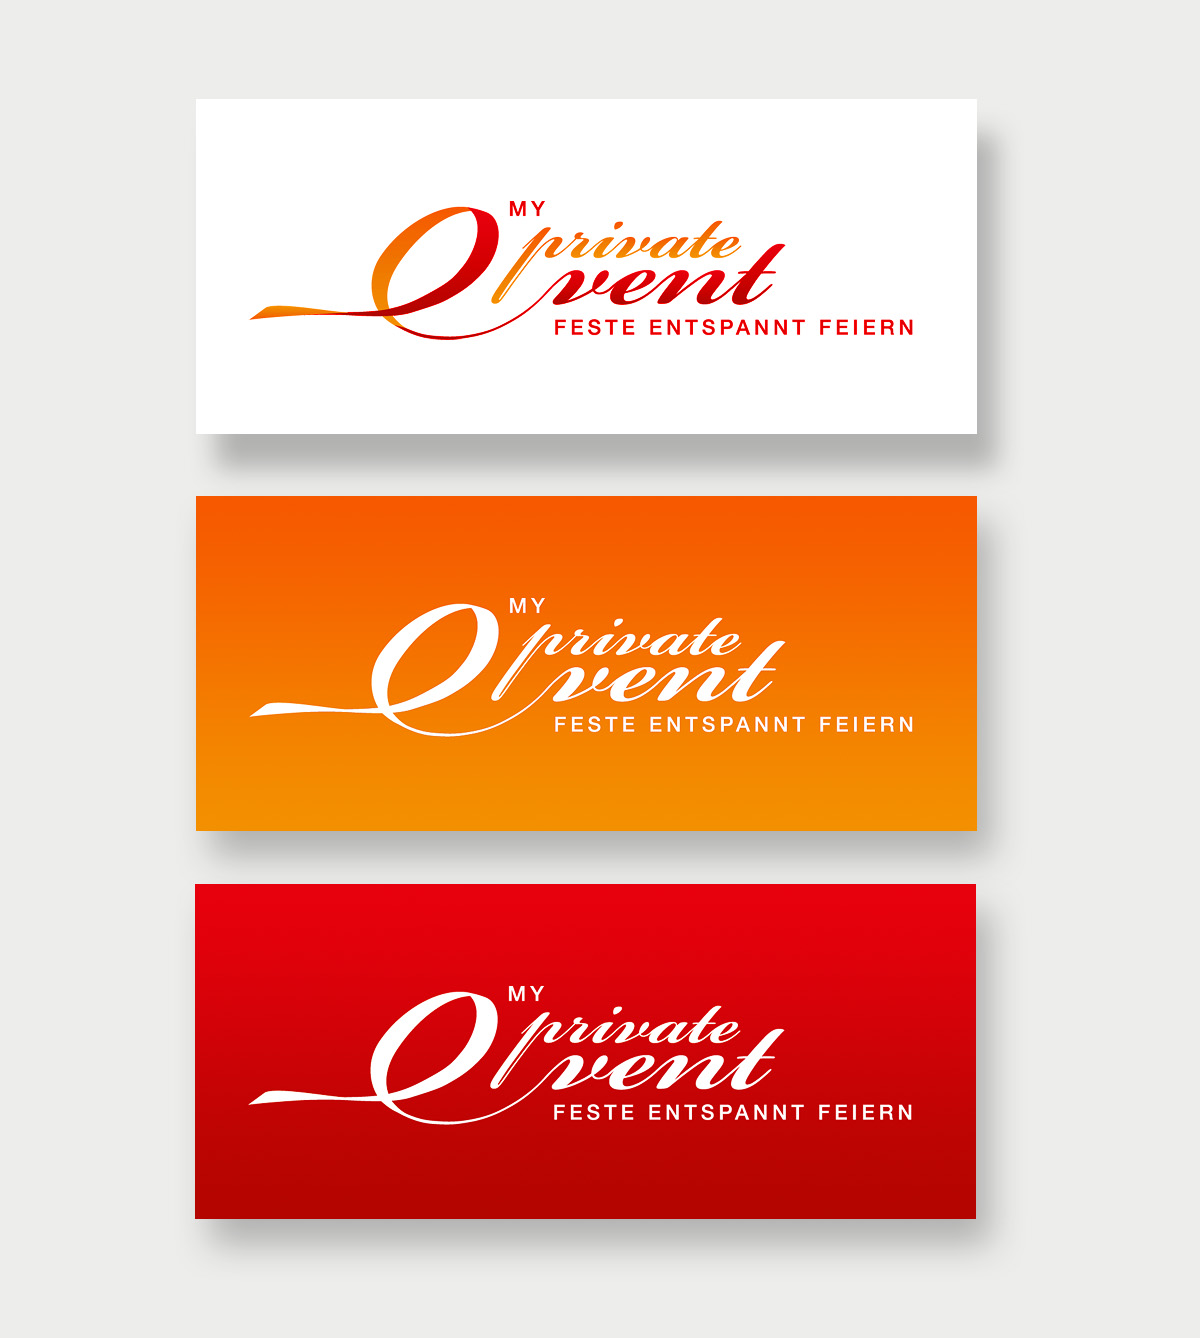 MY-private-event-Logos